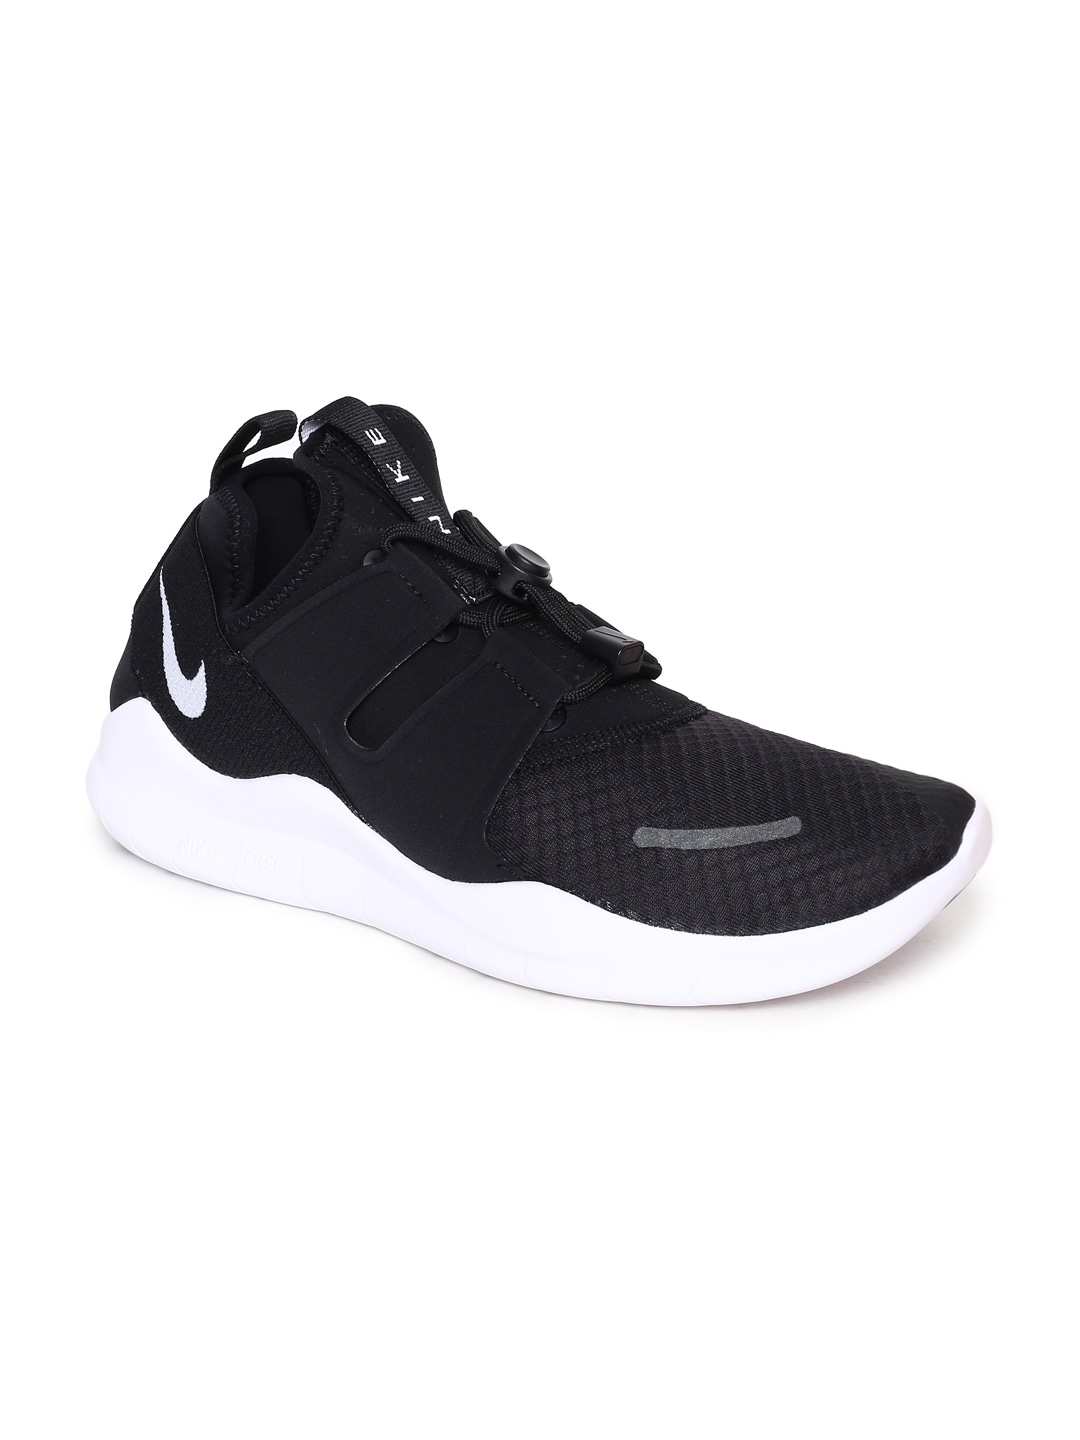 dacbc8458b0 Nike Free Running Shoes - Buy Nike Free Running Shoes online in India